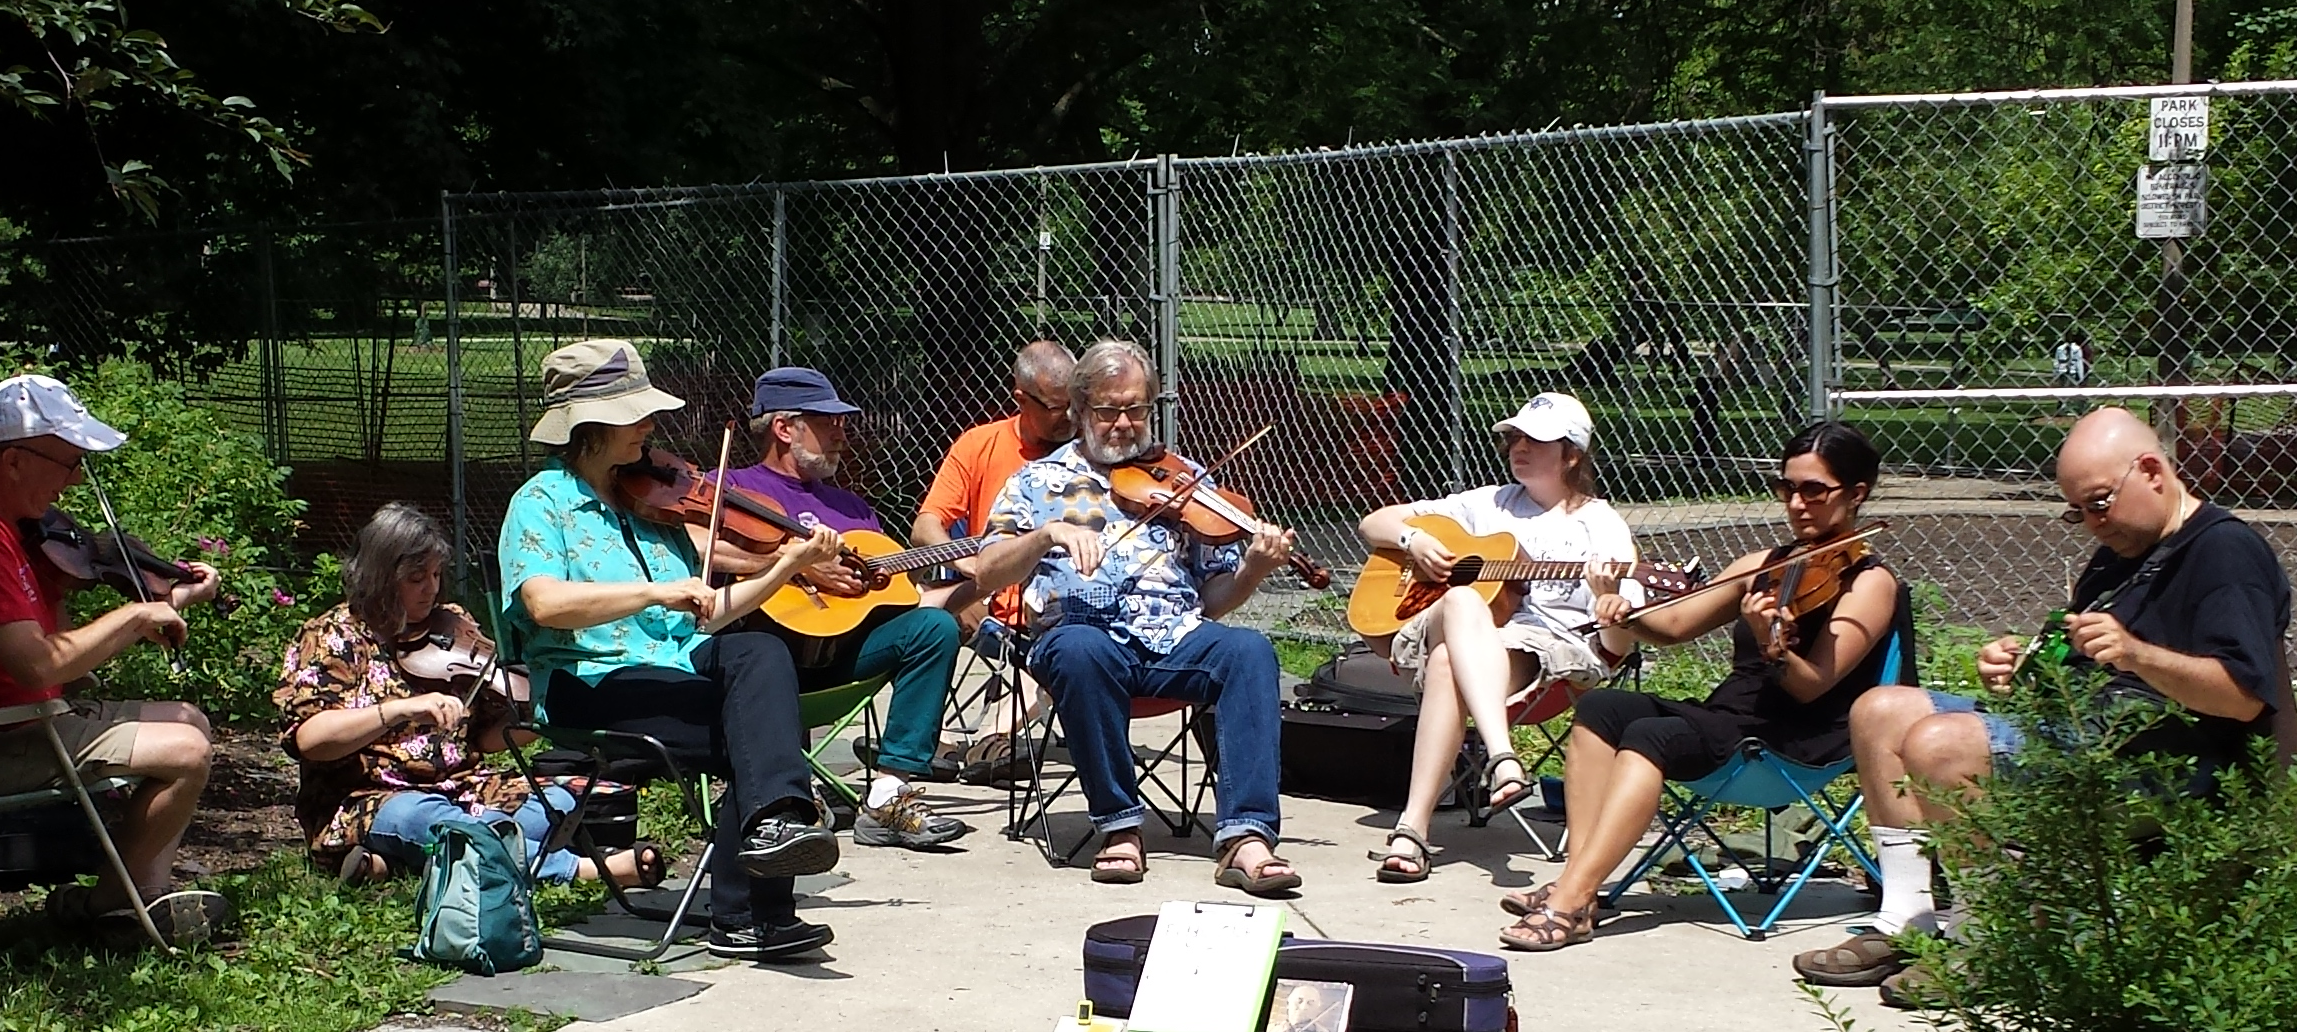 Fiddle Club at Make Music Chicago 2014